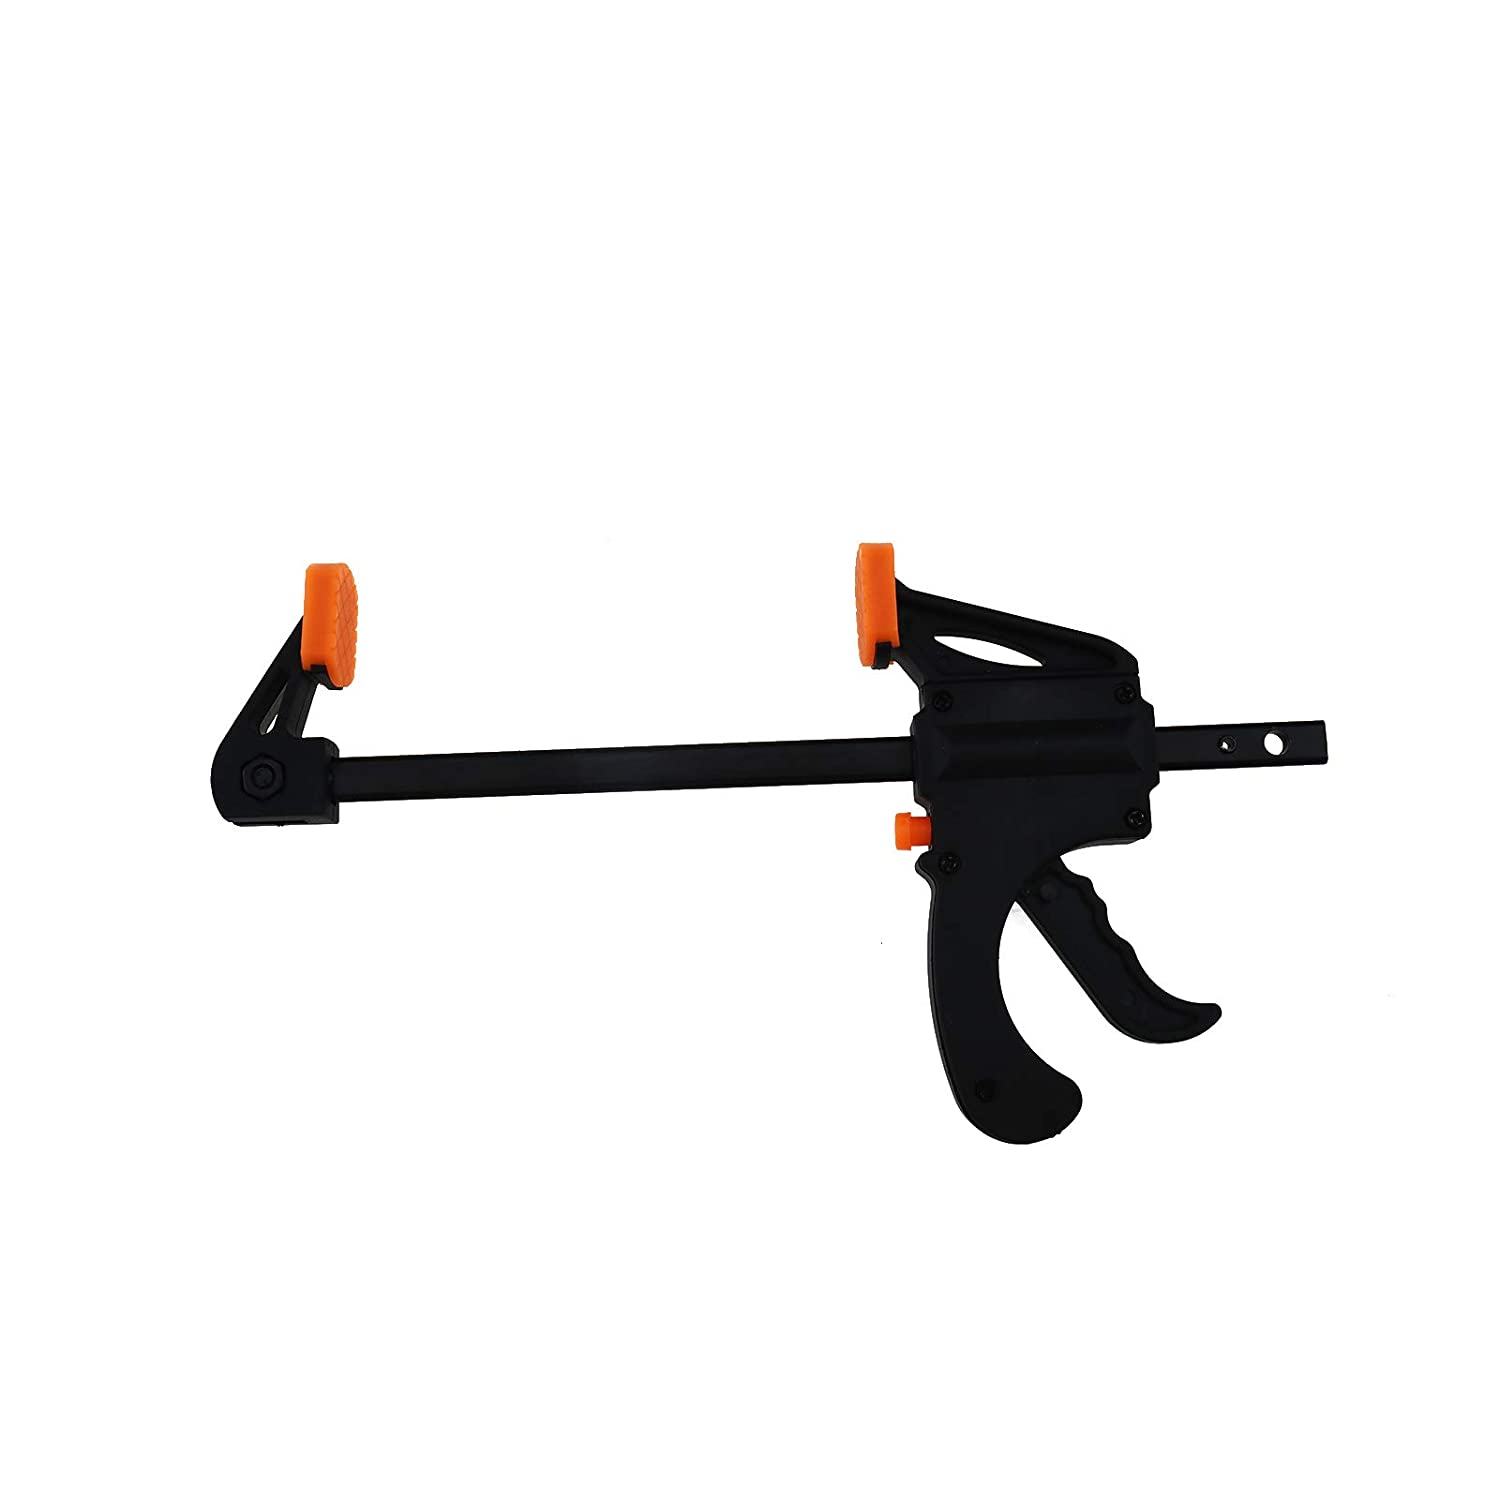 OTOTEC F-Clamp Heavy Duty for Woodworking 10cm//3.94 Aluminum Alloy